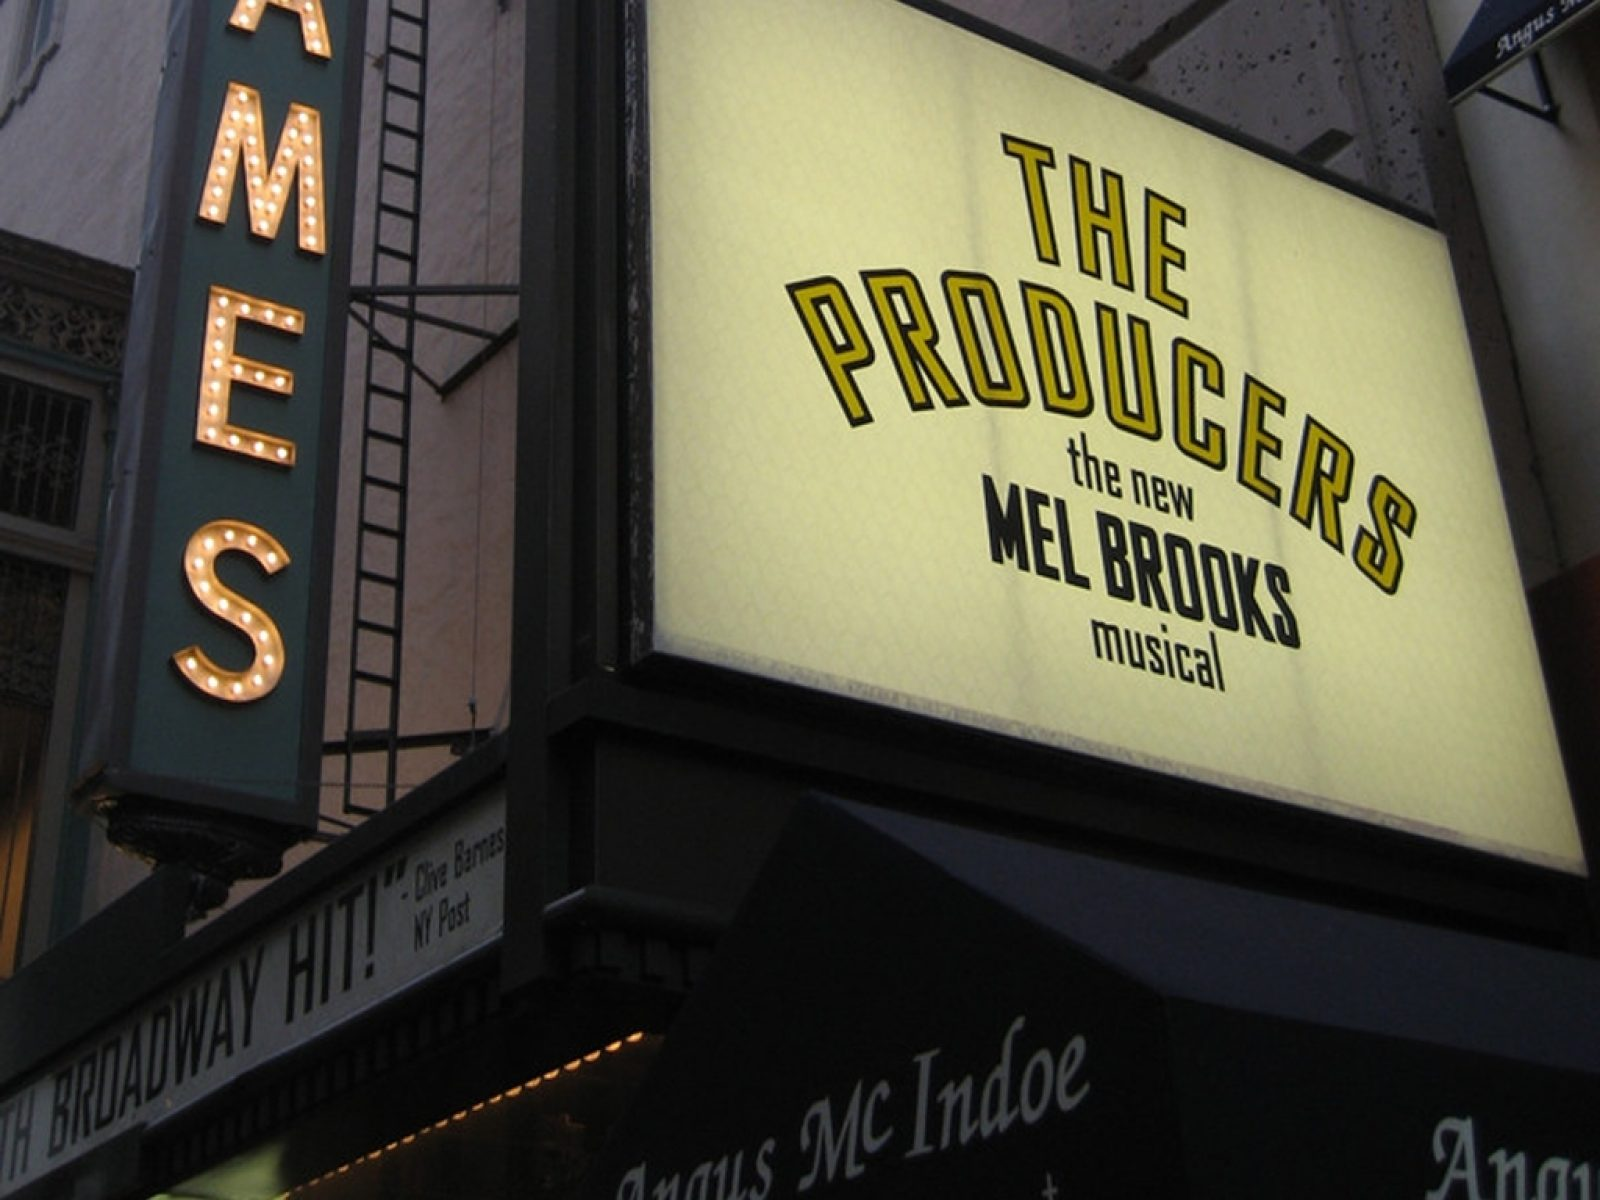 Stroman Presents: A Conversation on Broadway's The Producers